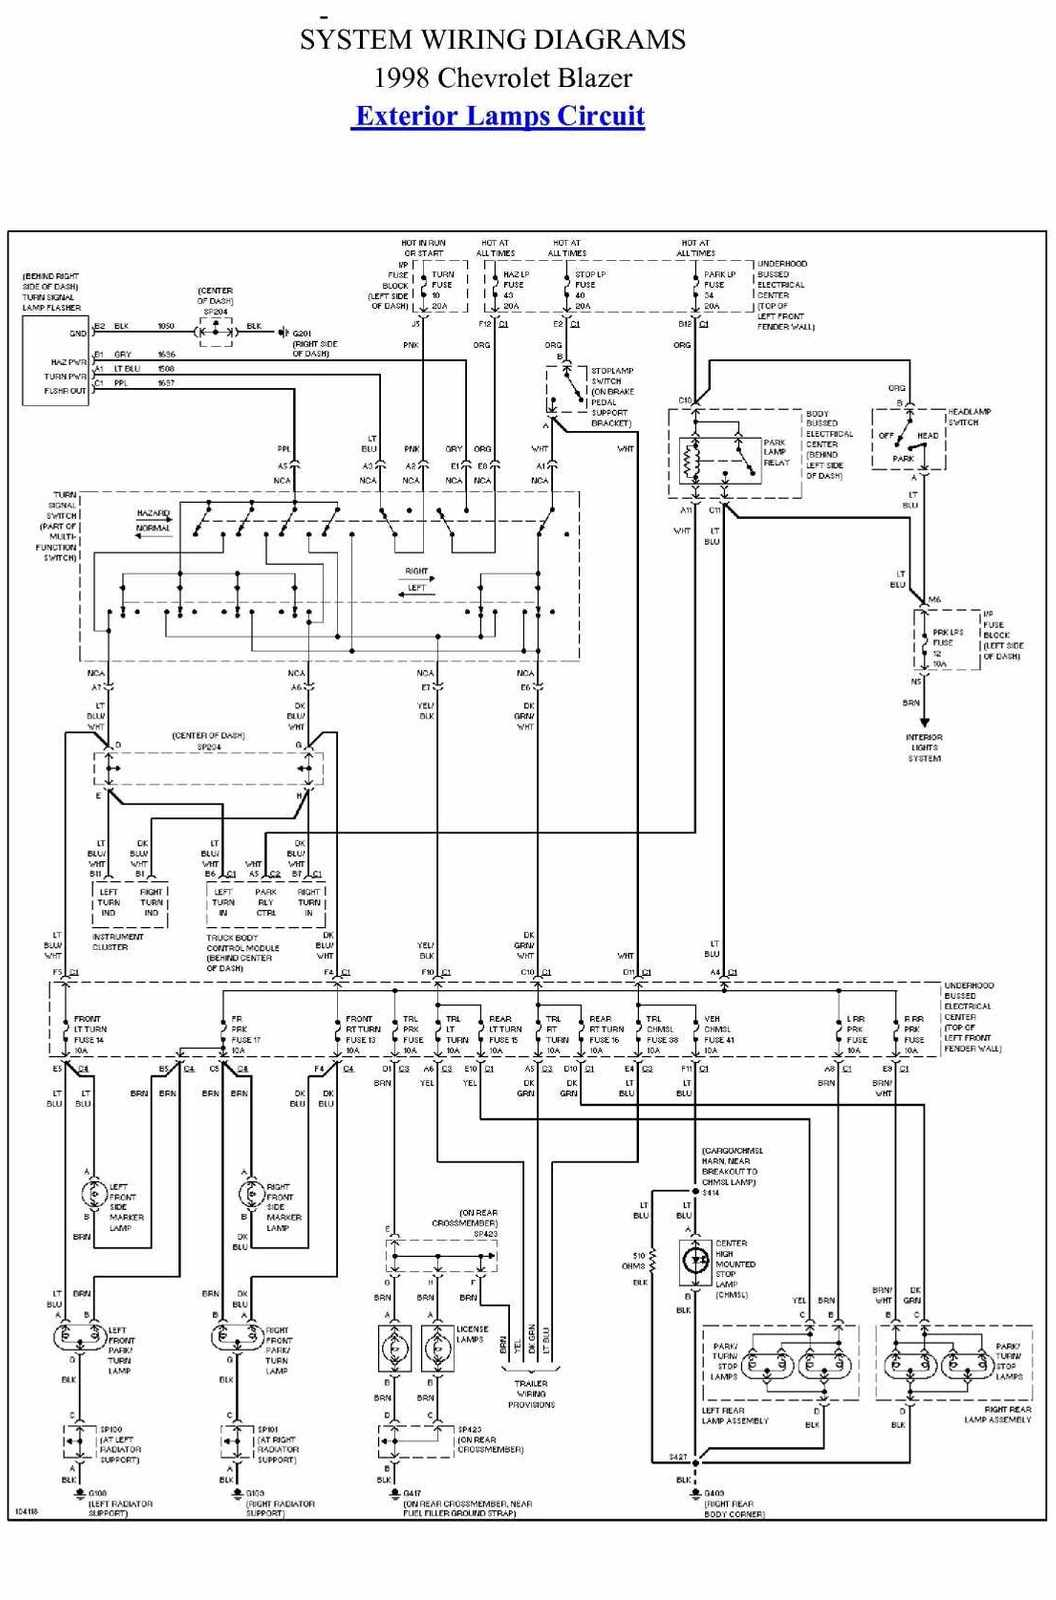 Exterior Lamp Circuit Diagram Of 1998 on 2000 Chevy Impala Radio Wiring Diagram